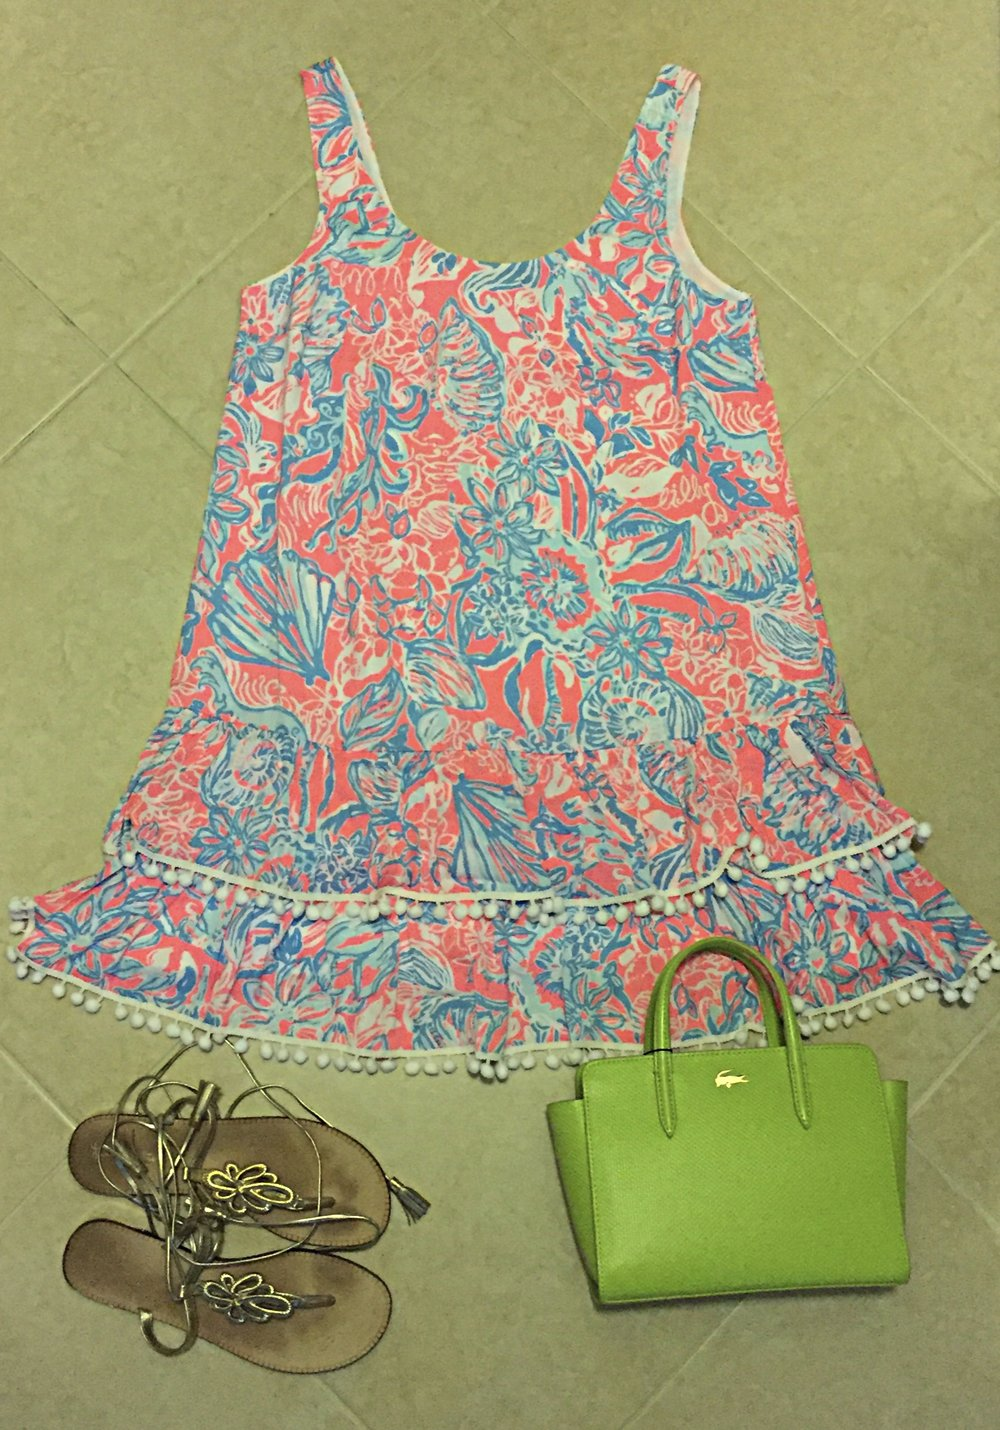 Shown: Lilly Pulitzer dress, Lilly Pulitzer shoes, Lacoste bag.